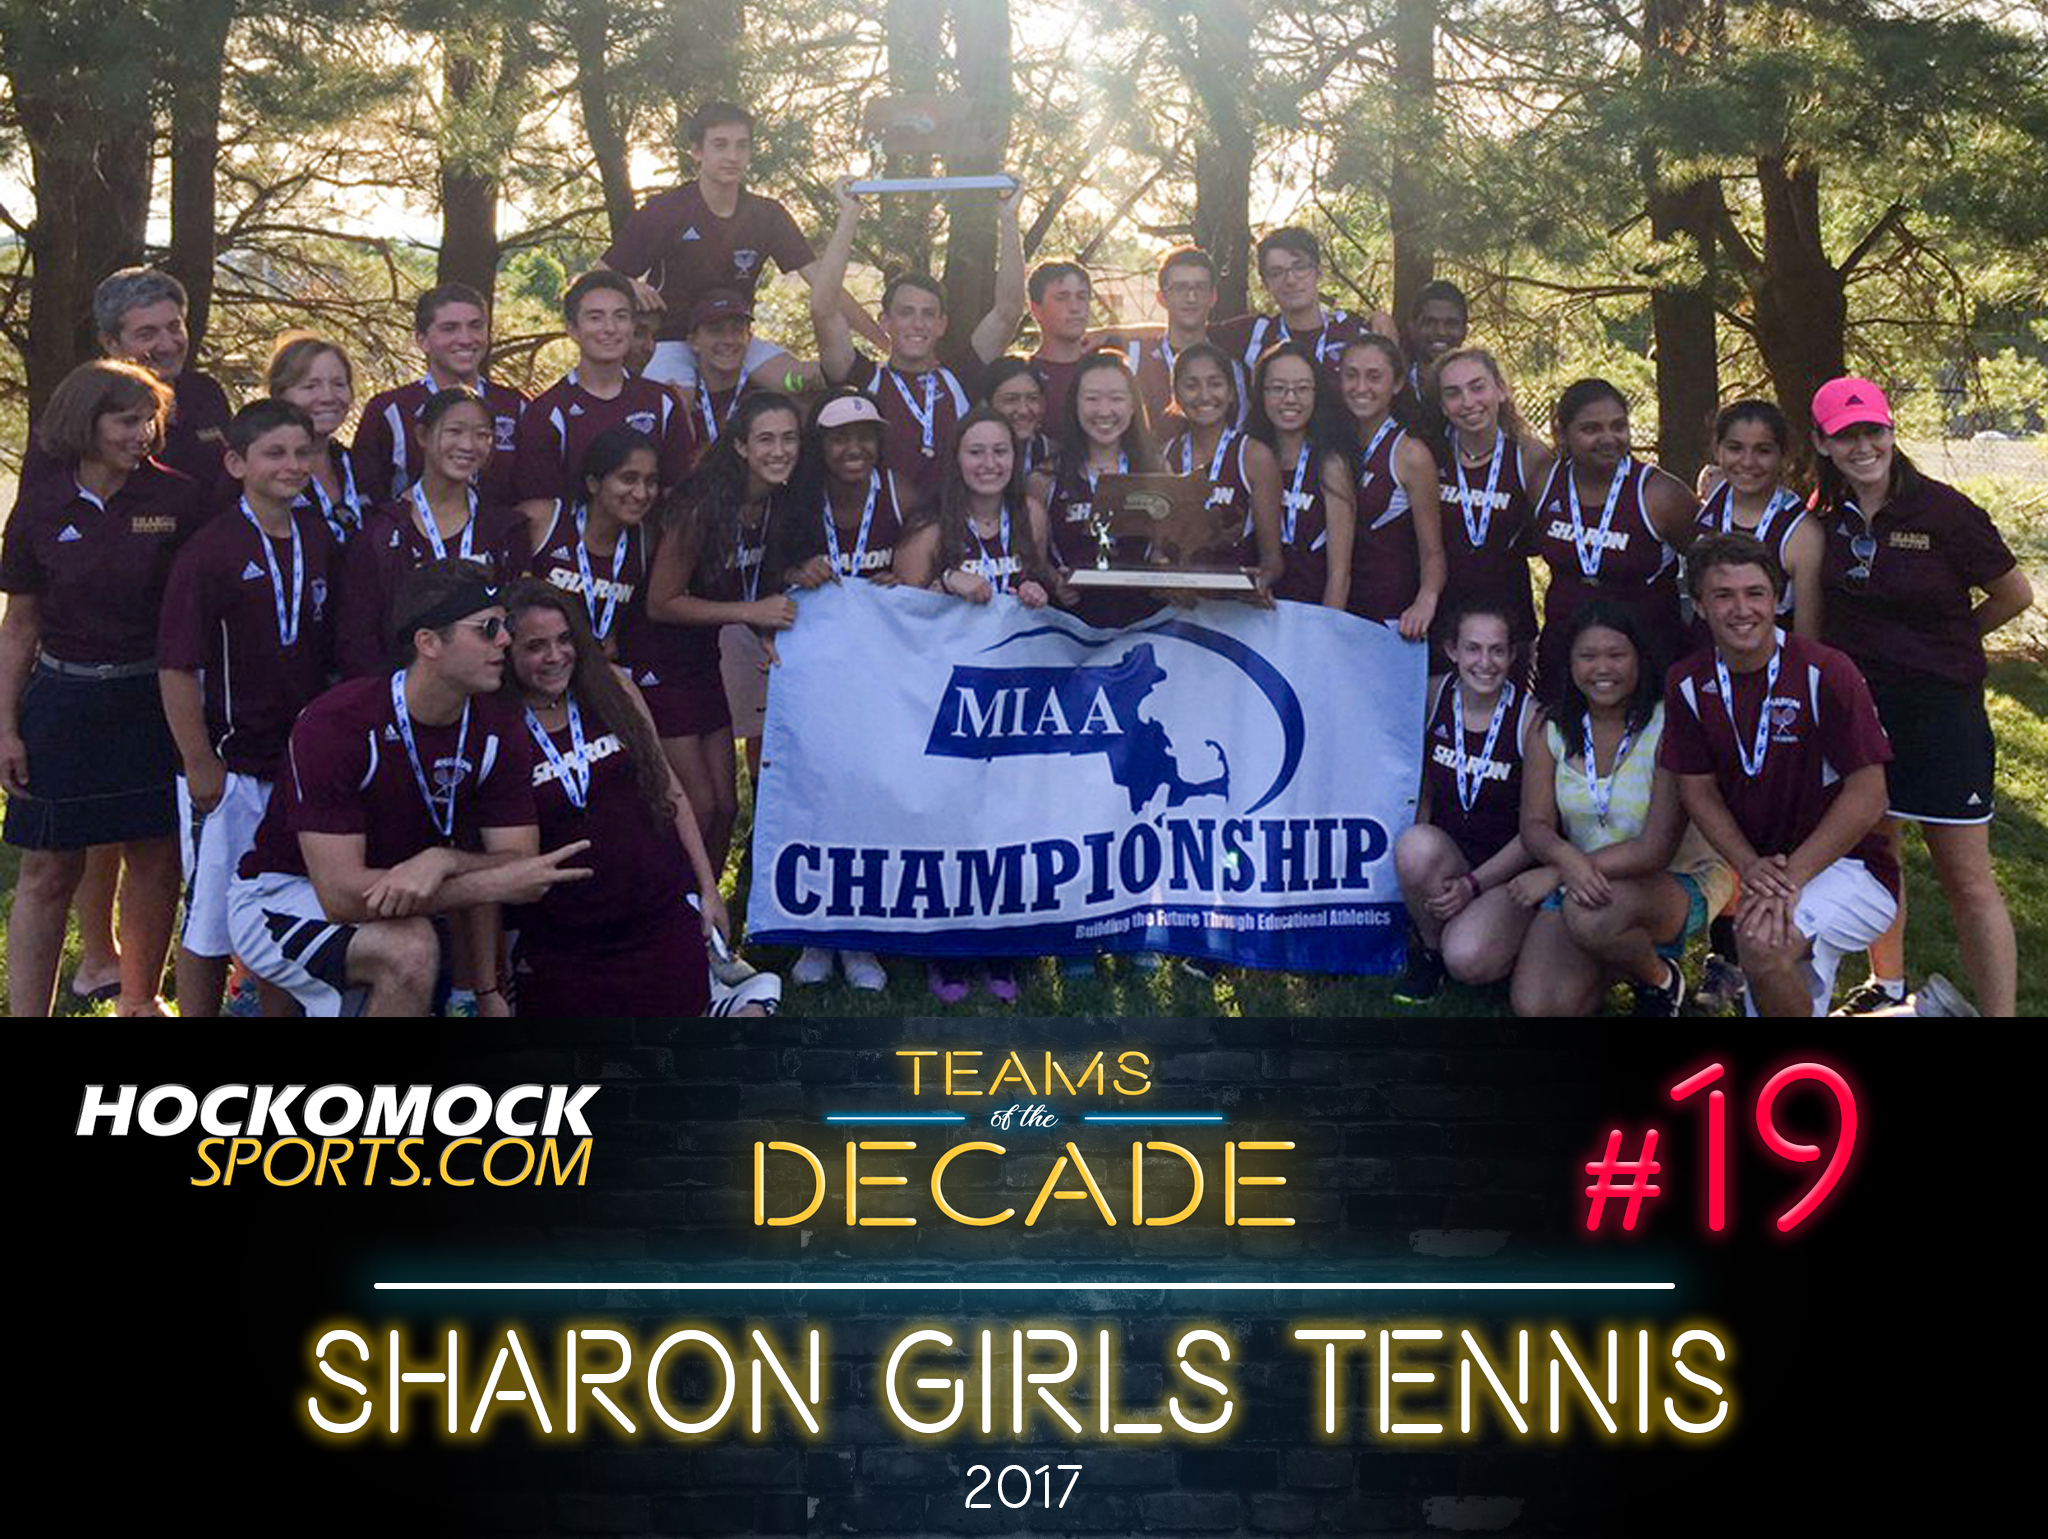 Sharon girls tennis